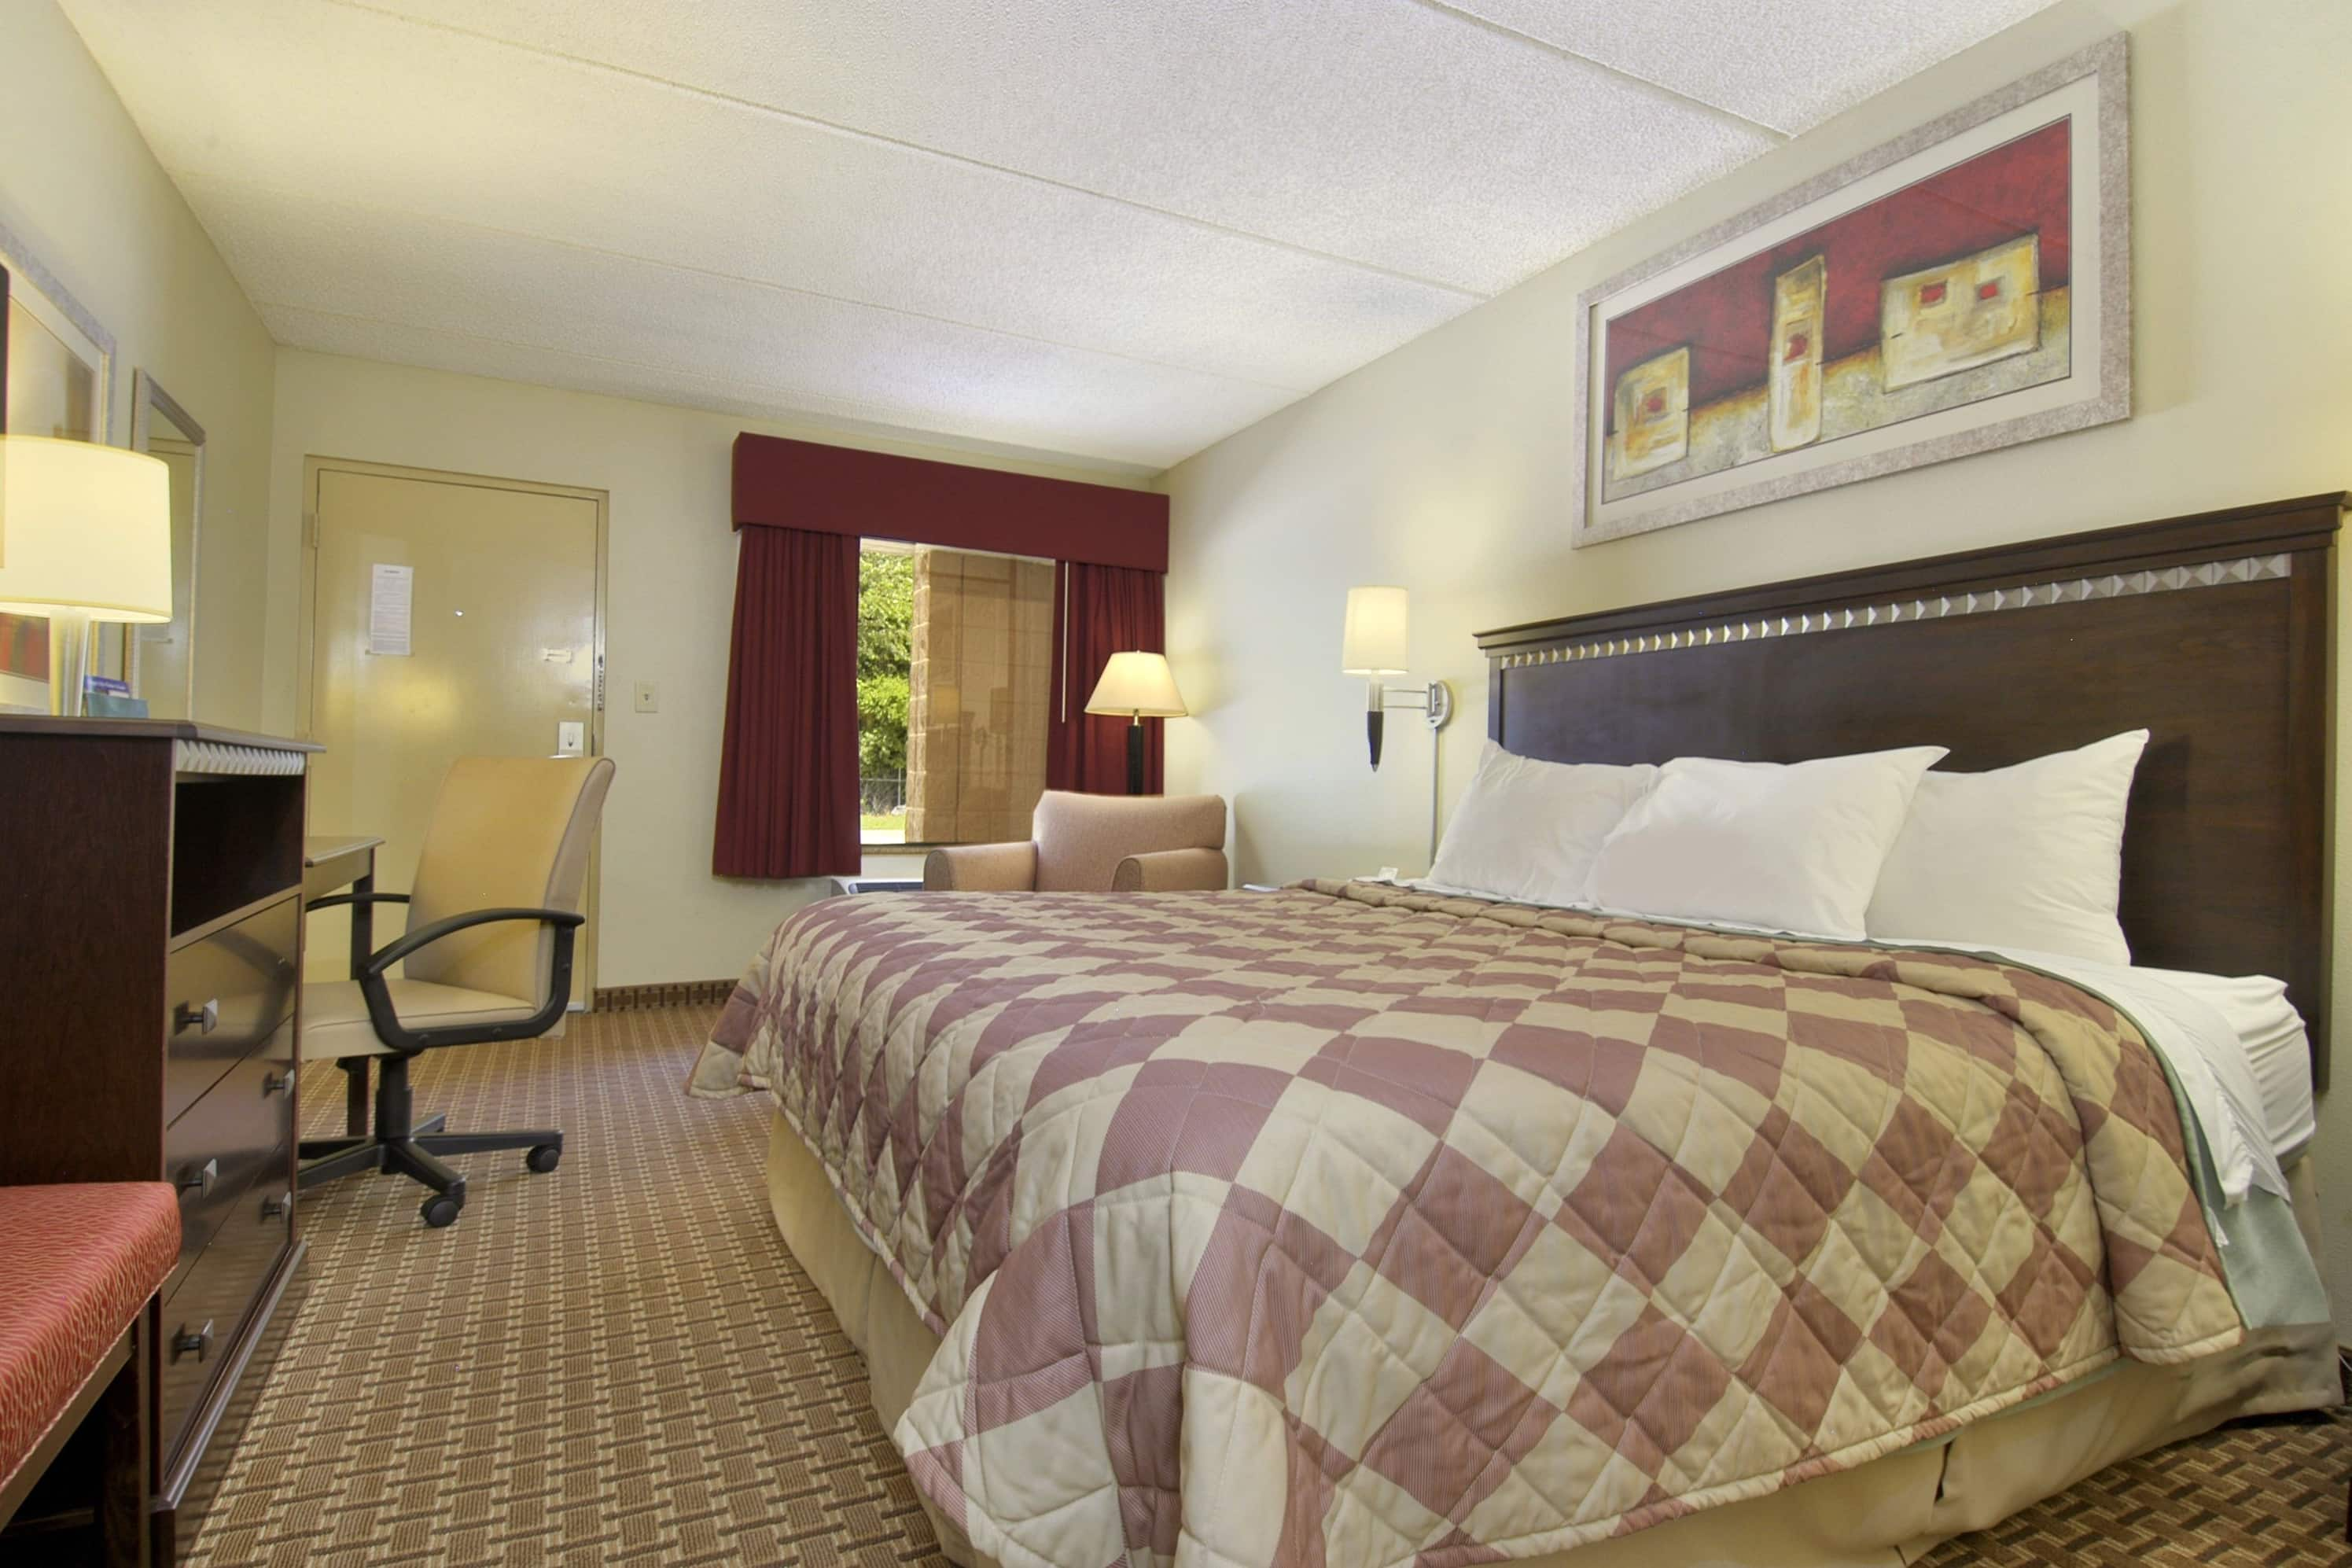 Guest room at the Days Inn Leeds in Leeds, Alabama